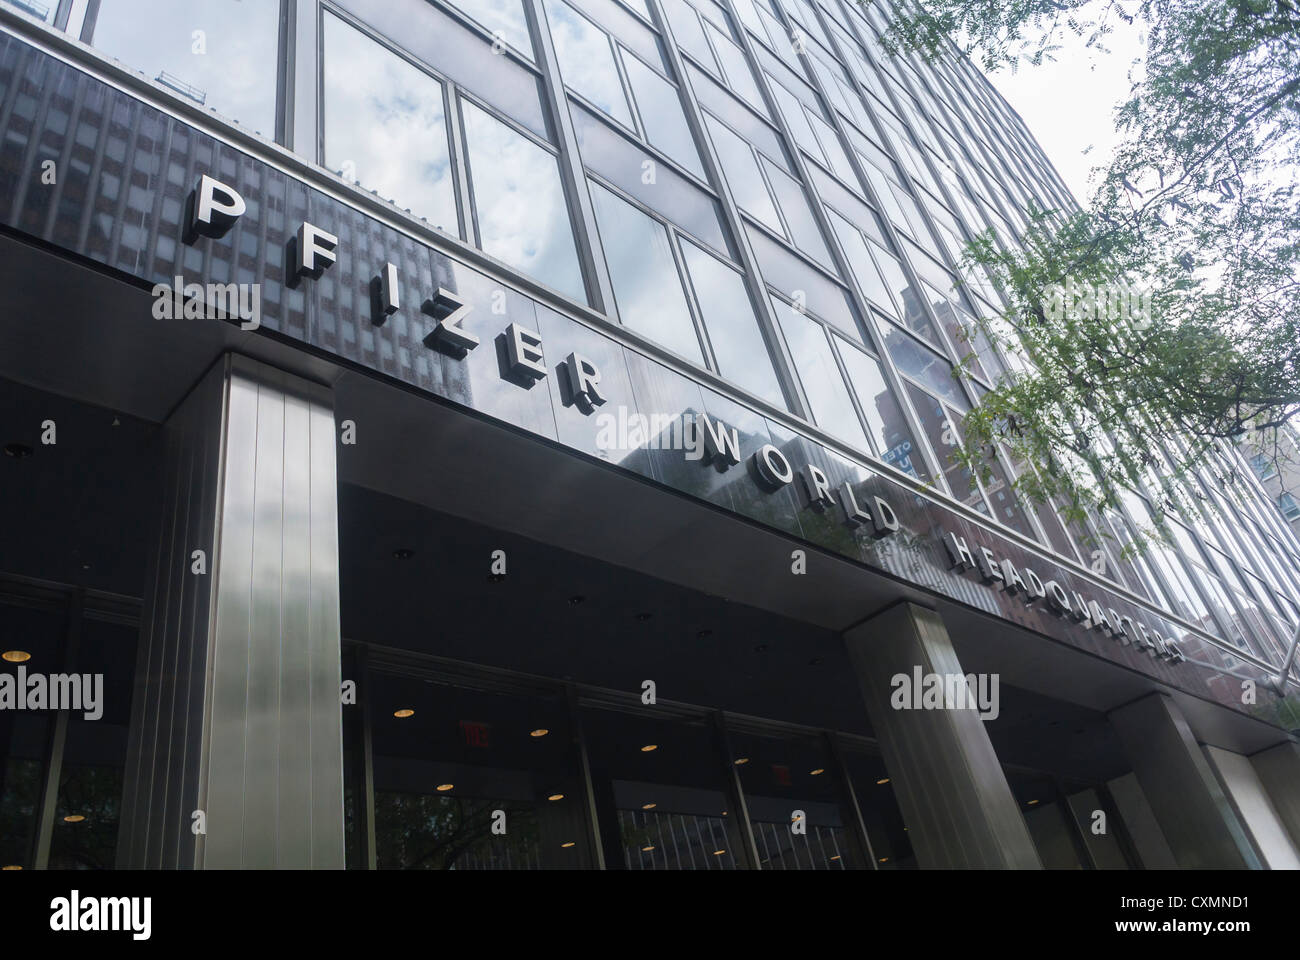 New York Ny Usa Pfizer Pharmaceutical Corporation World Stock Photo Alamy